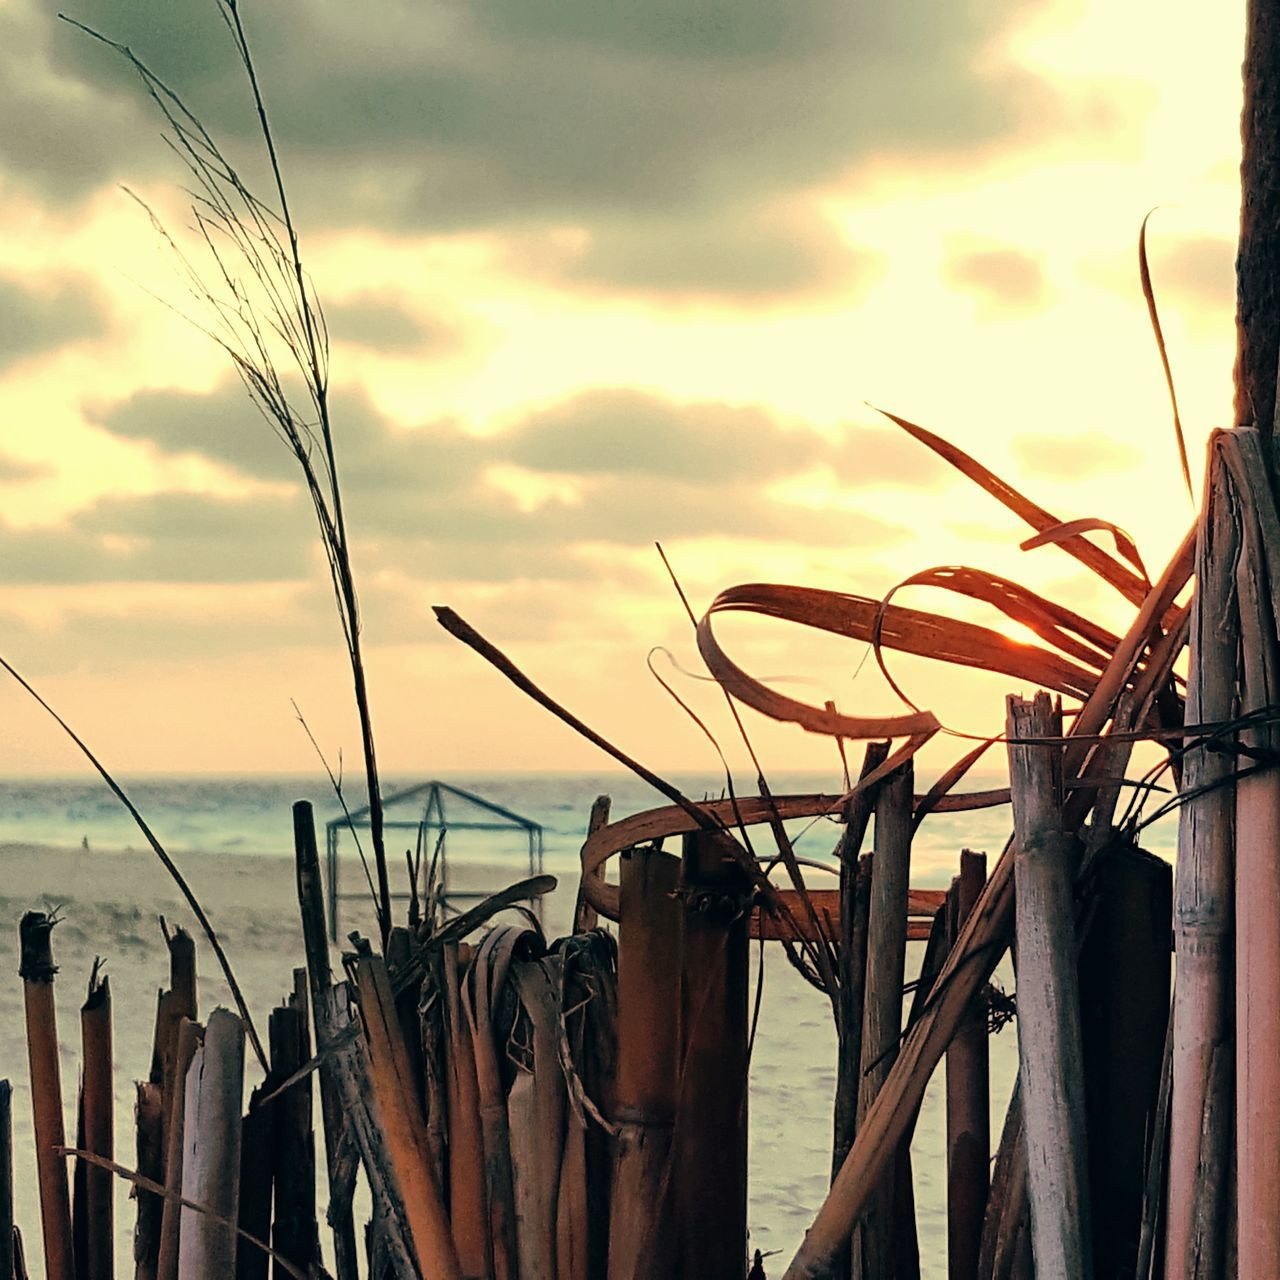 nature, sky, sunset, no people, beauty in nature, outdoors, sea, tranquil scene, scenics, cloud - sky, growth, water, drying, day, close-up